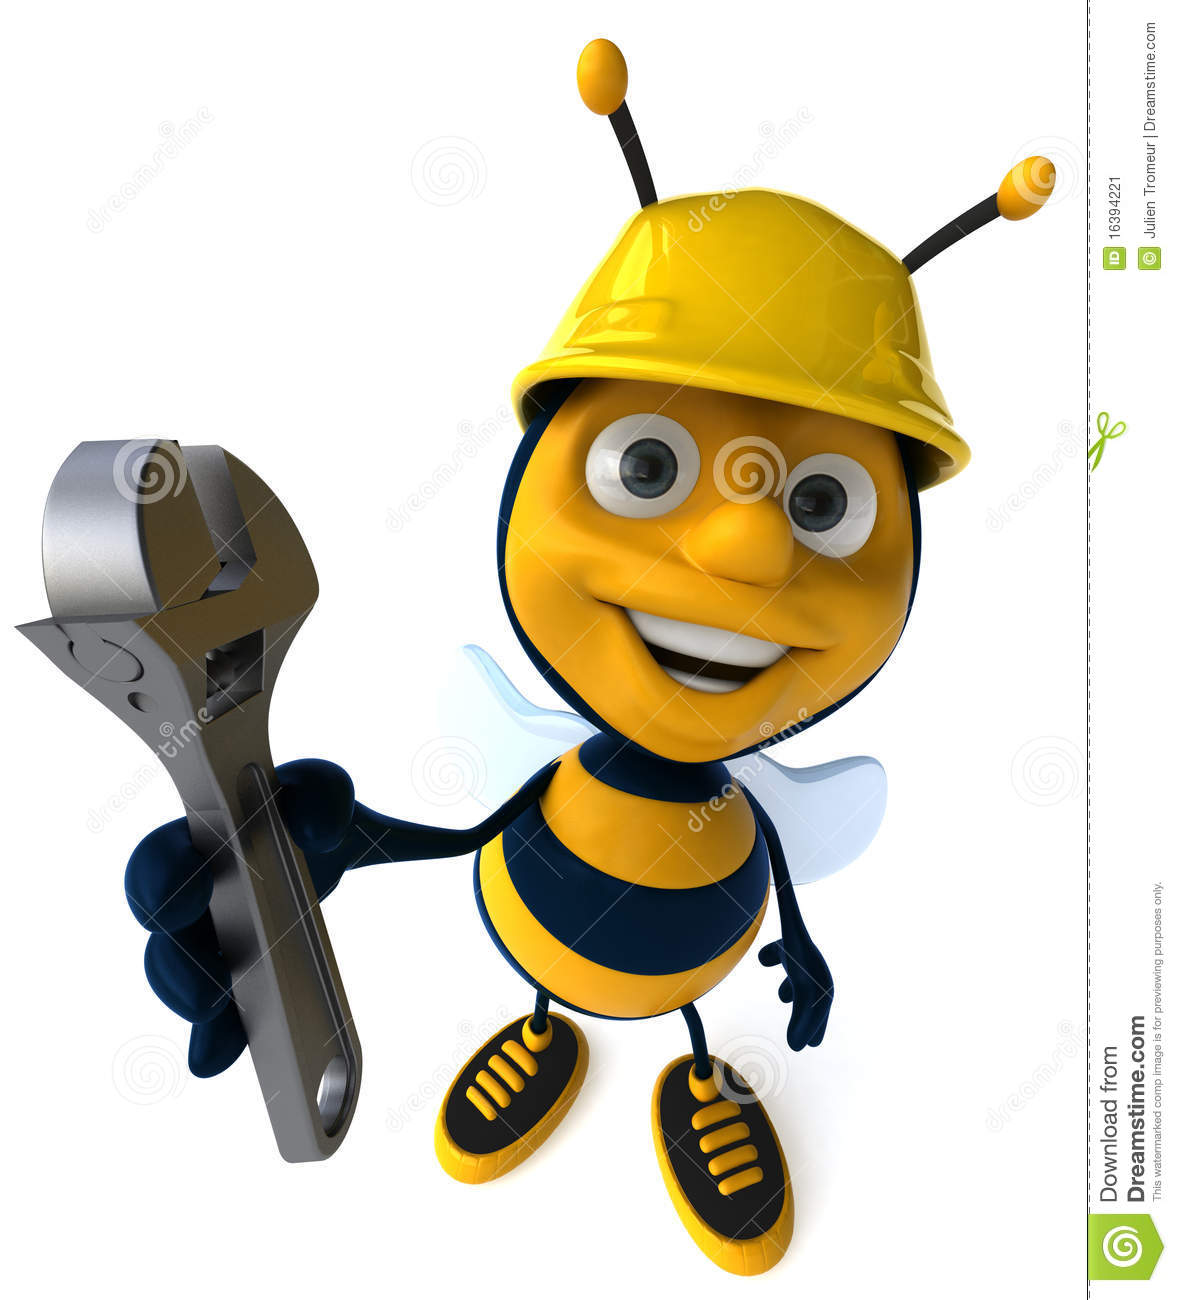 Working Bee Stock Image - Image: 16394221